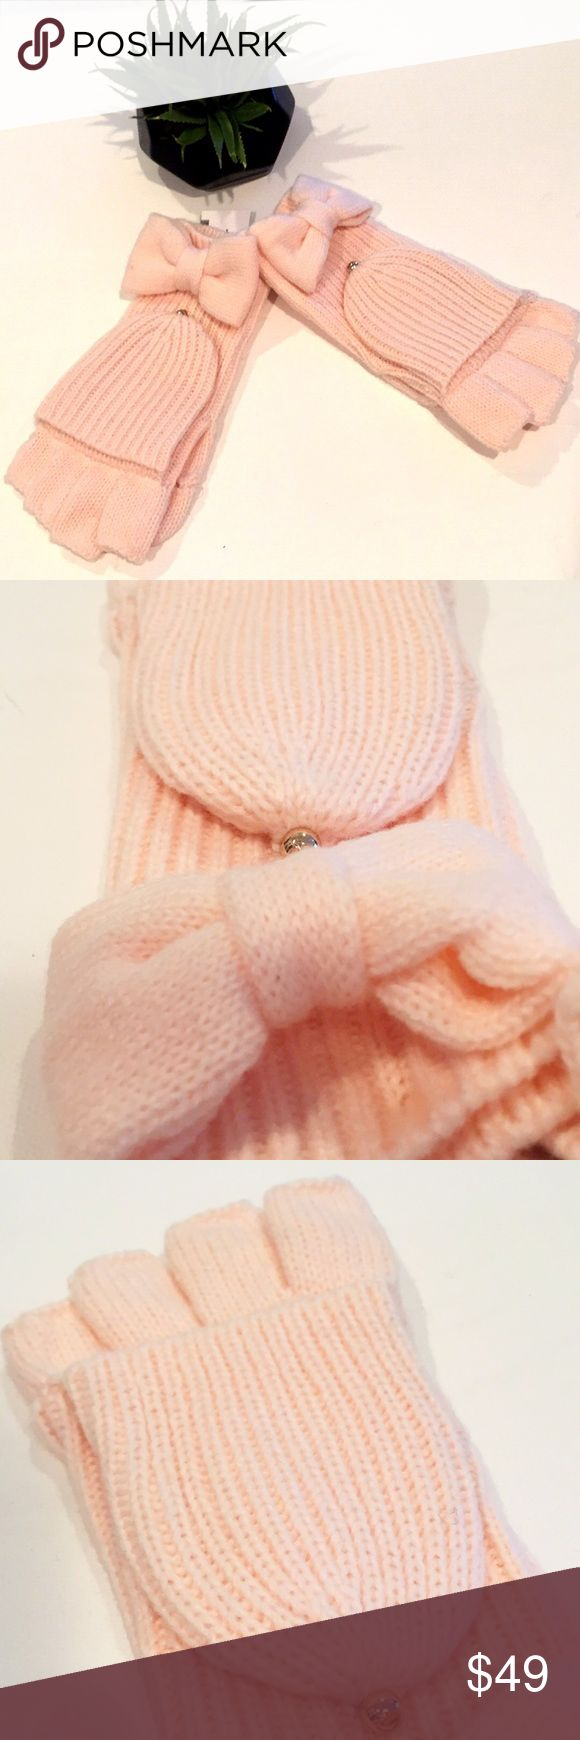 NWTs Kate Spade Rose Dew Knitted Gloves Bows add a dainty touch to these knit Kate Spade New York gloves. Removable top and thumb sections allow for easy touchscreen use. Unlined. 100% acrylic Dry clean. Imported, China Rose Dew  One size  Note the tag is ripped half way  No trades  Firm unless Bundled kate spade Accessories Gloves & Mittens